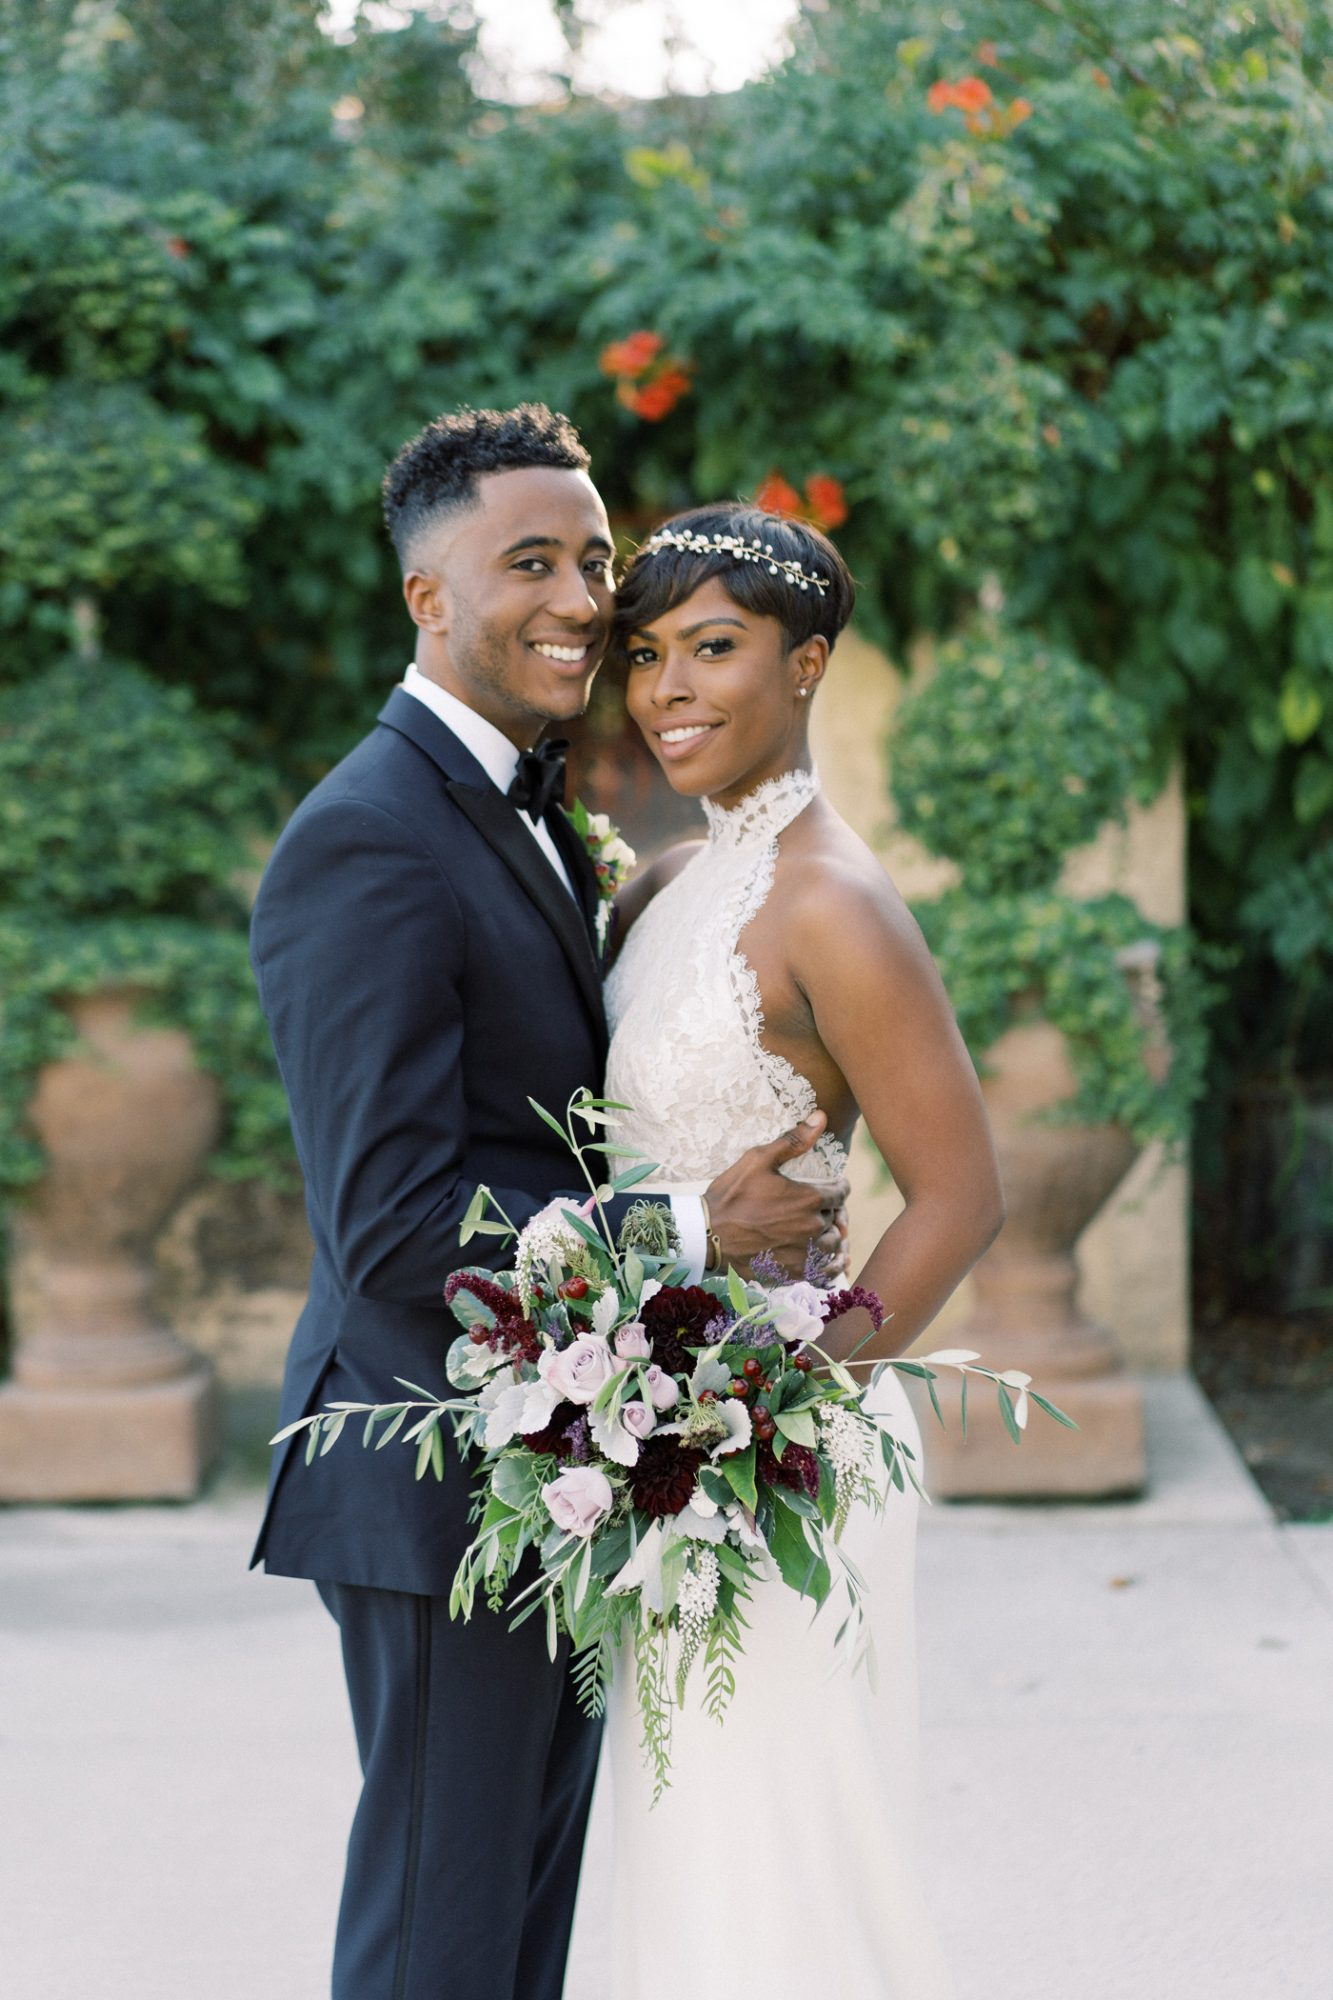 Chaya and Braxton outdoor wedding portrait